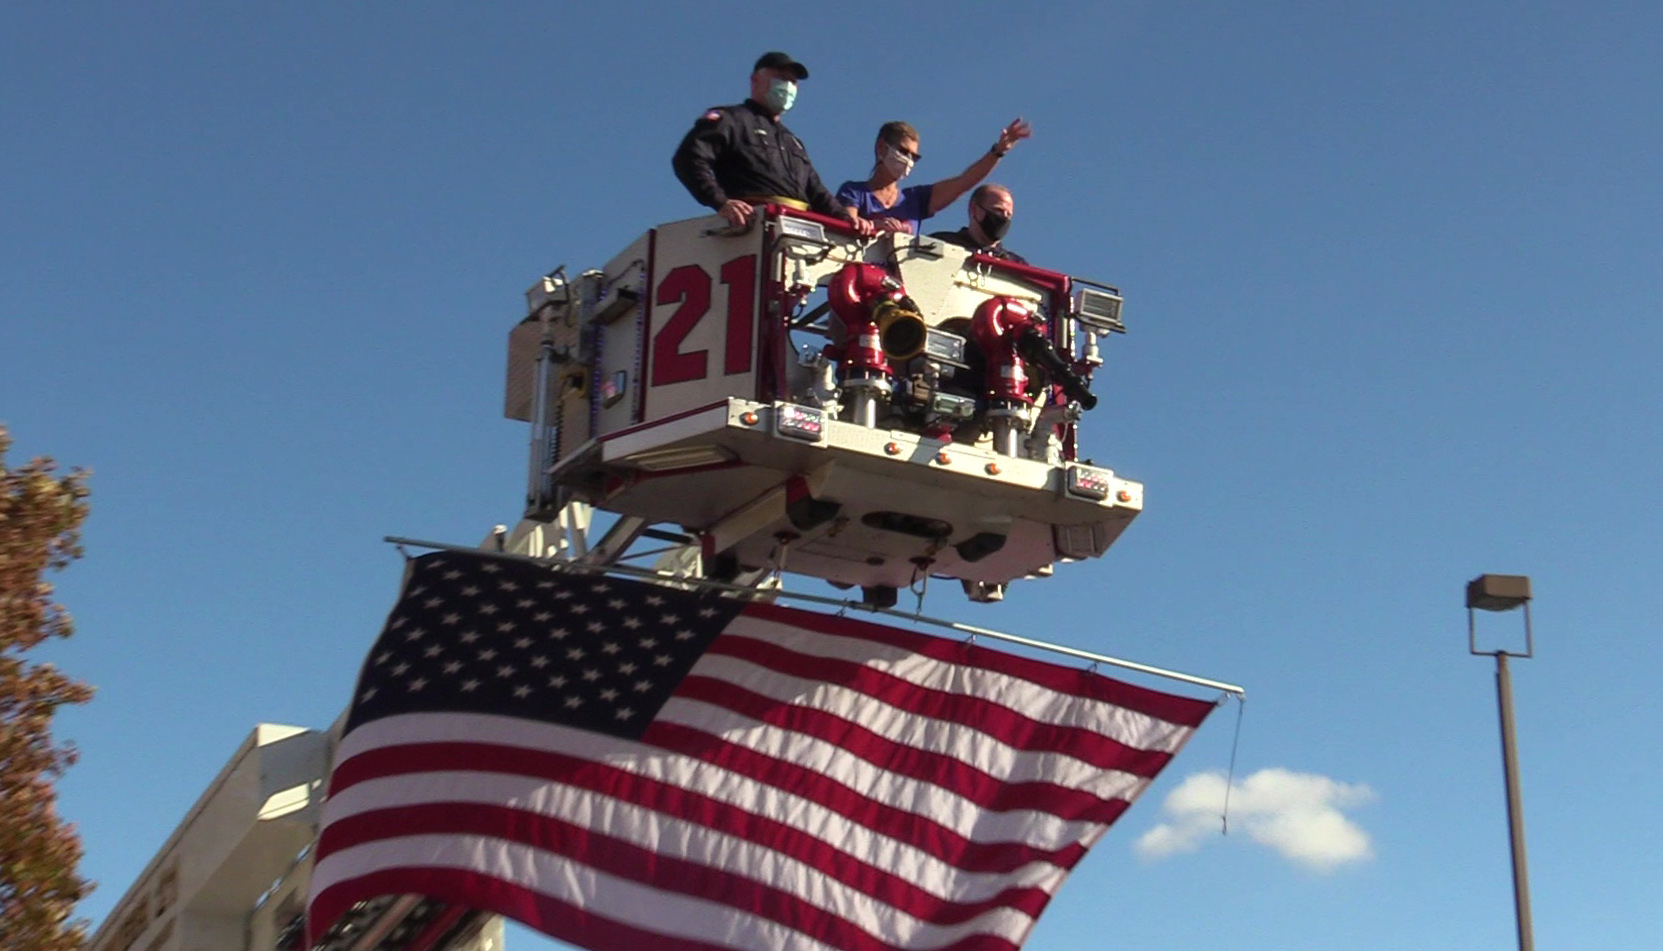 Anne Schmidt on a fire truck with firefighters